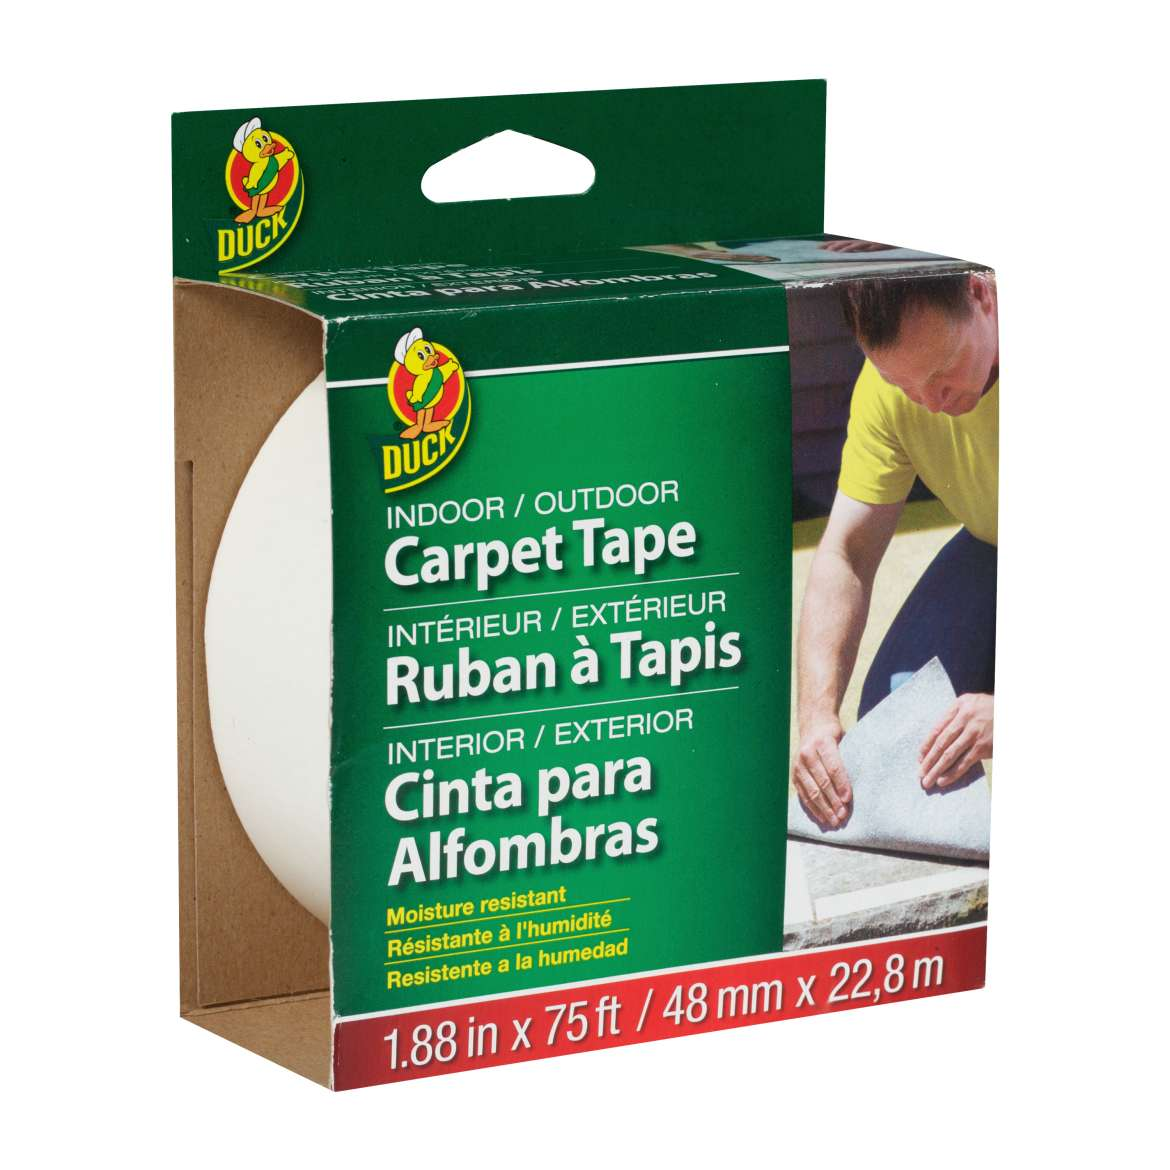 Indoor/Outdoor Carpet Tape